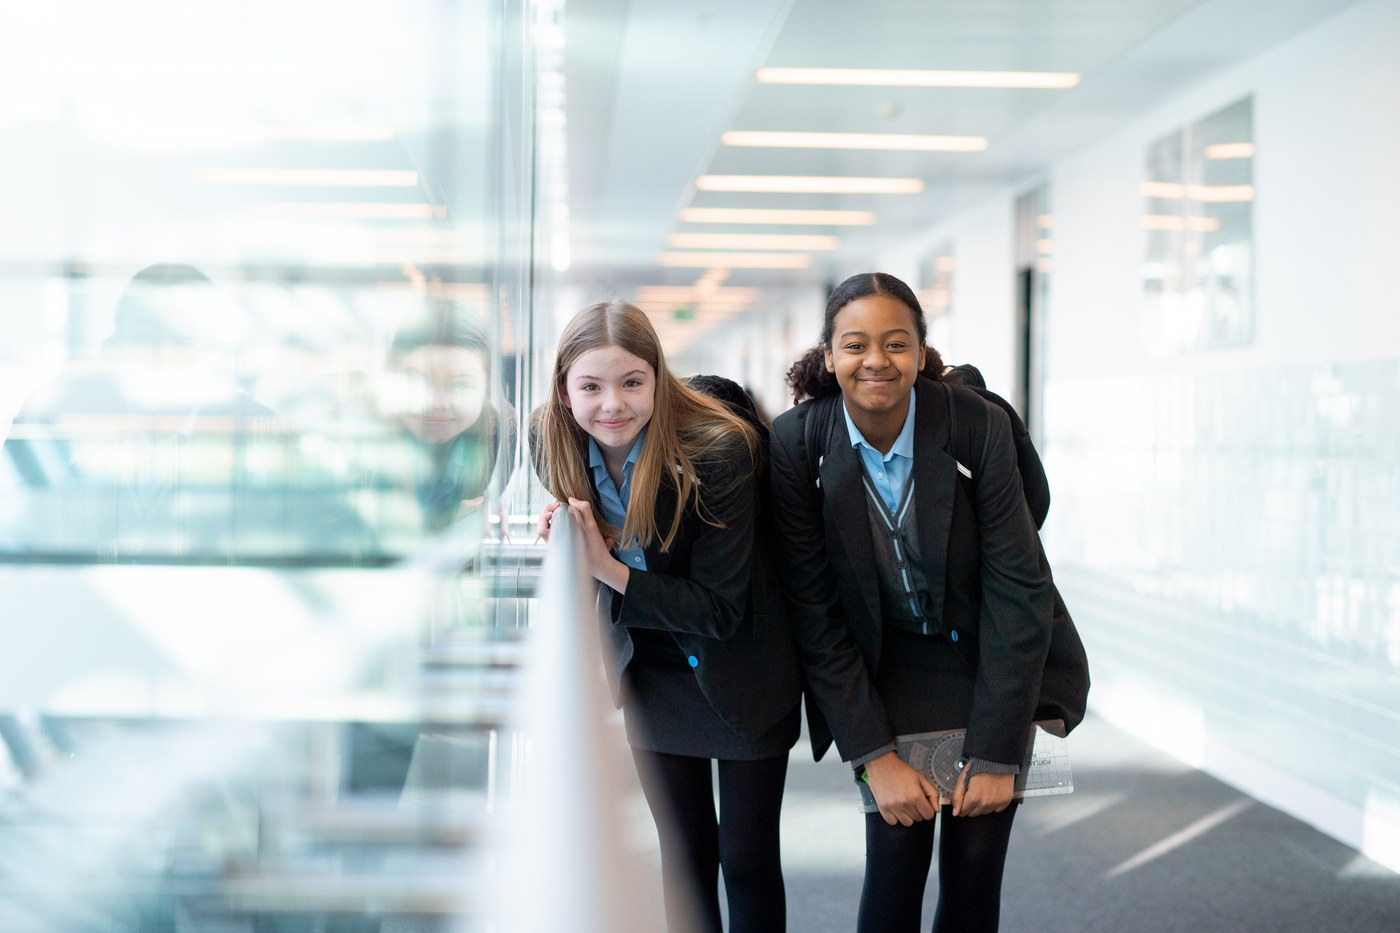 SIXTH FORM ADMISSIONS - PLEASE SEE: SIXTH FORM - APPLYING TO HOLLAND PARK